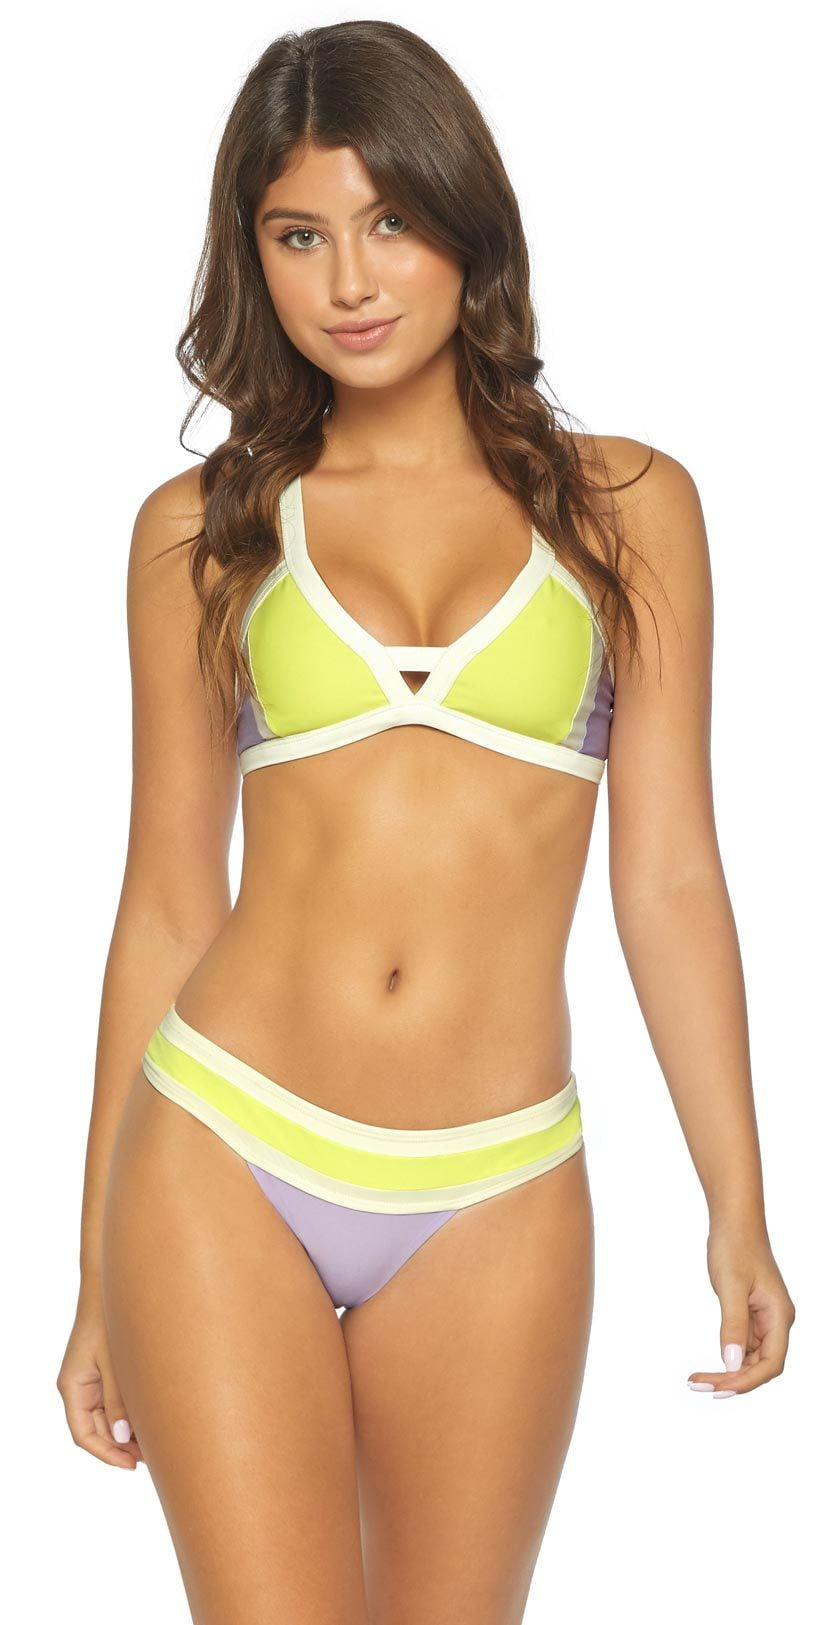 PilyQ Color Block Keyhole Halter Top in Lavender LAV-303H: